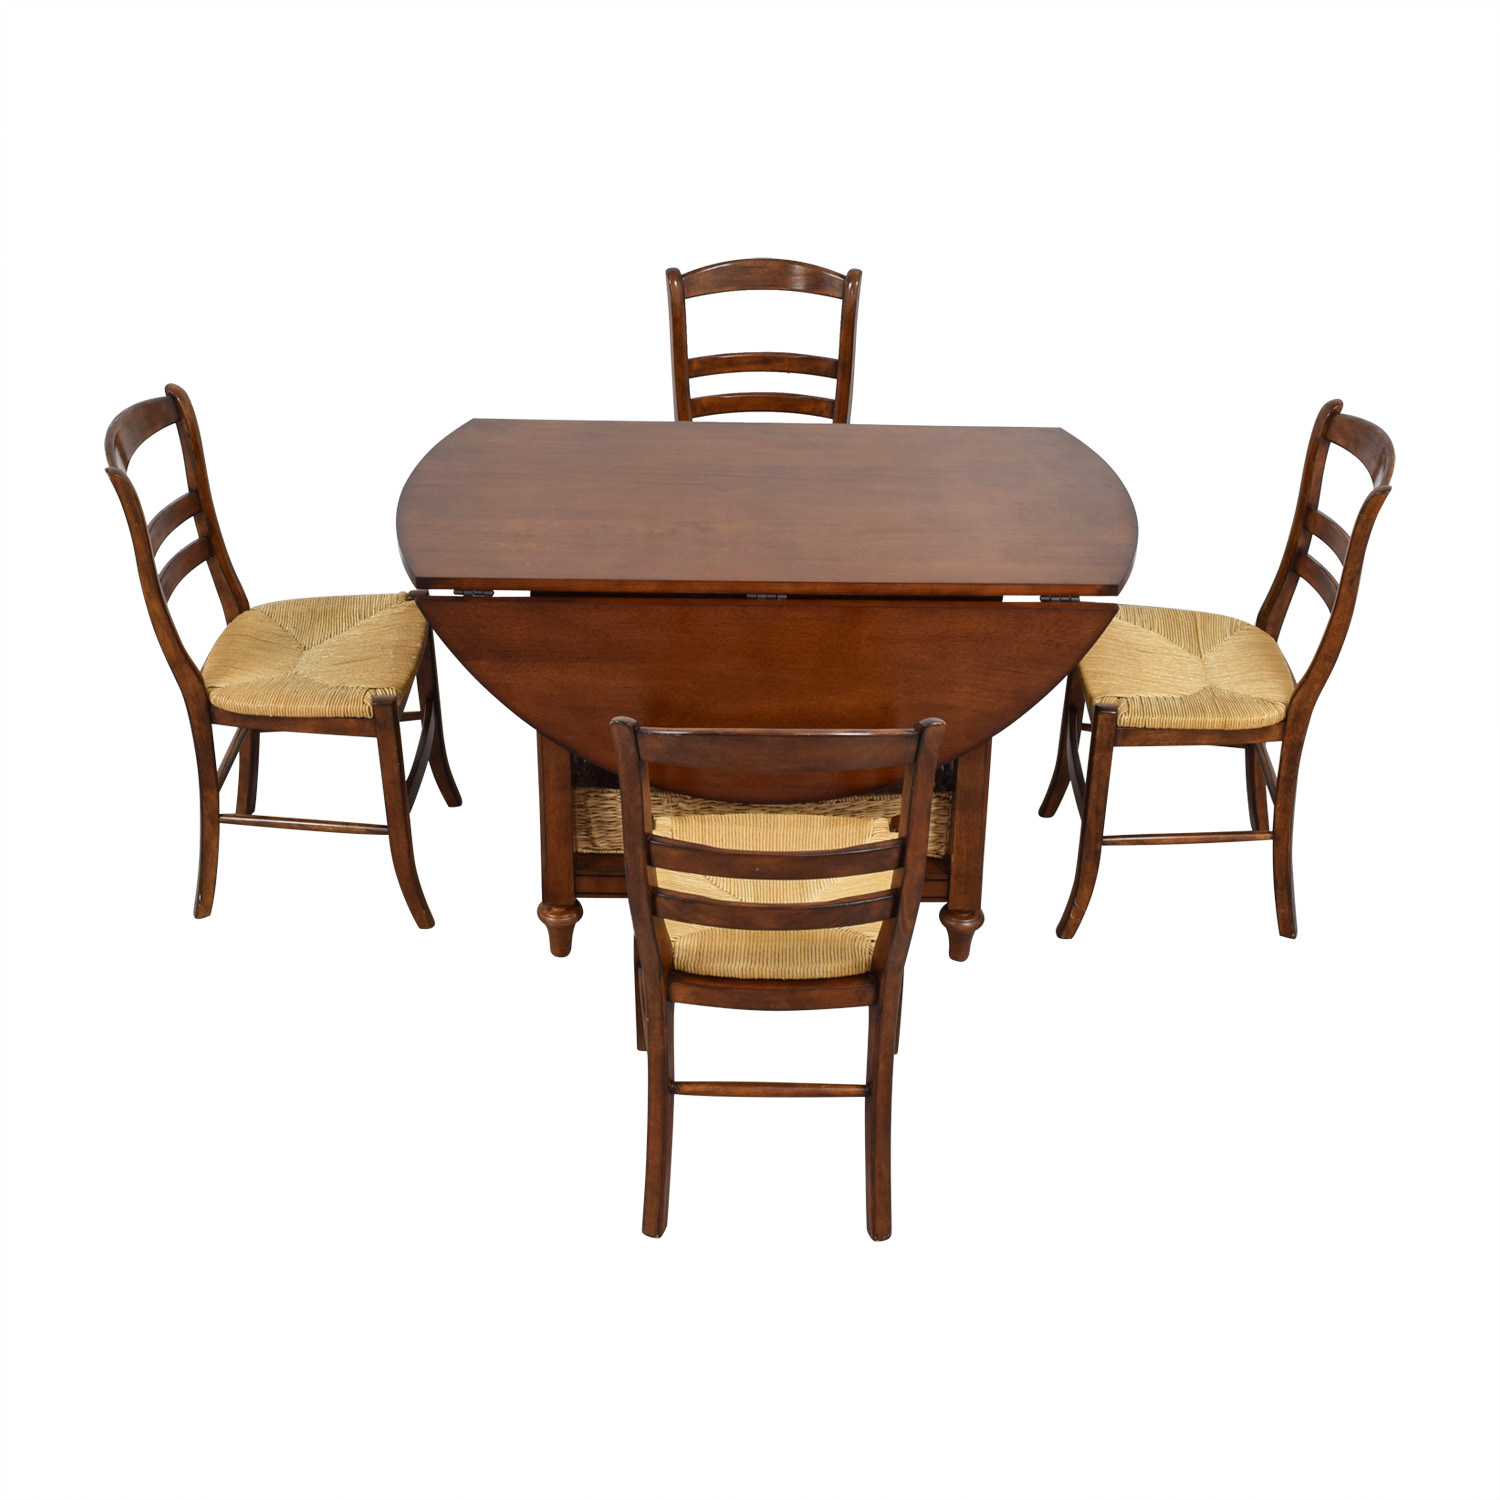 Pottery Barn Pottery Barn Shayne Drop Leaf Dining Set with Storage Baskets brown